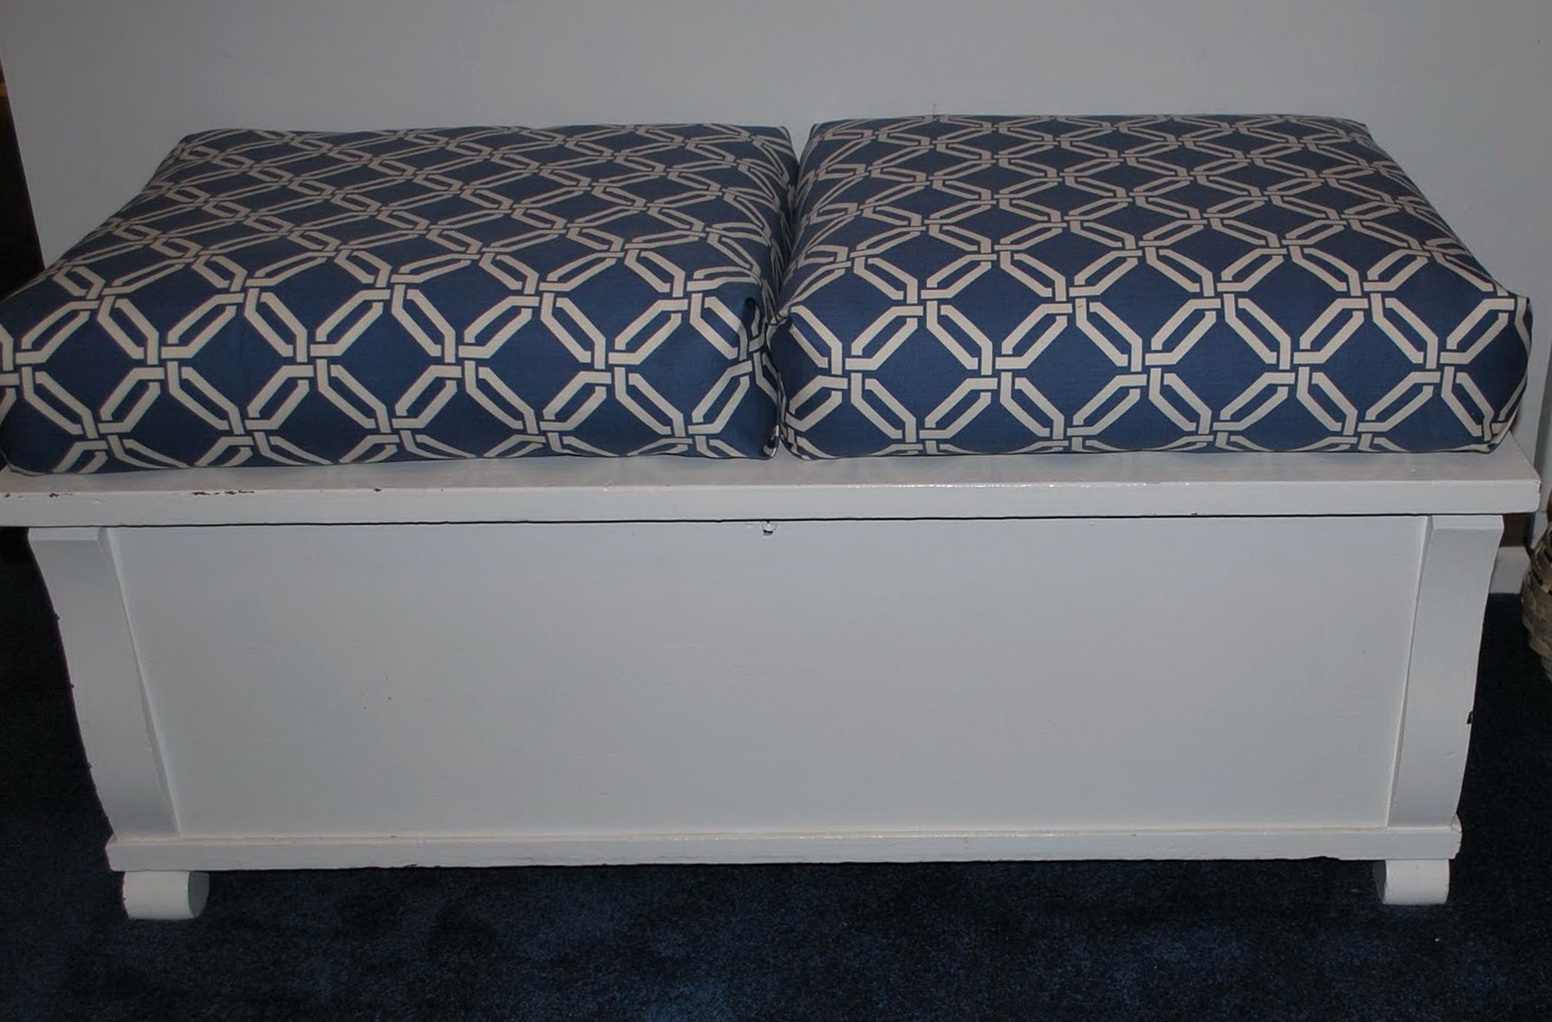 Box Cushion Covers For Sale